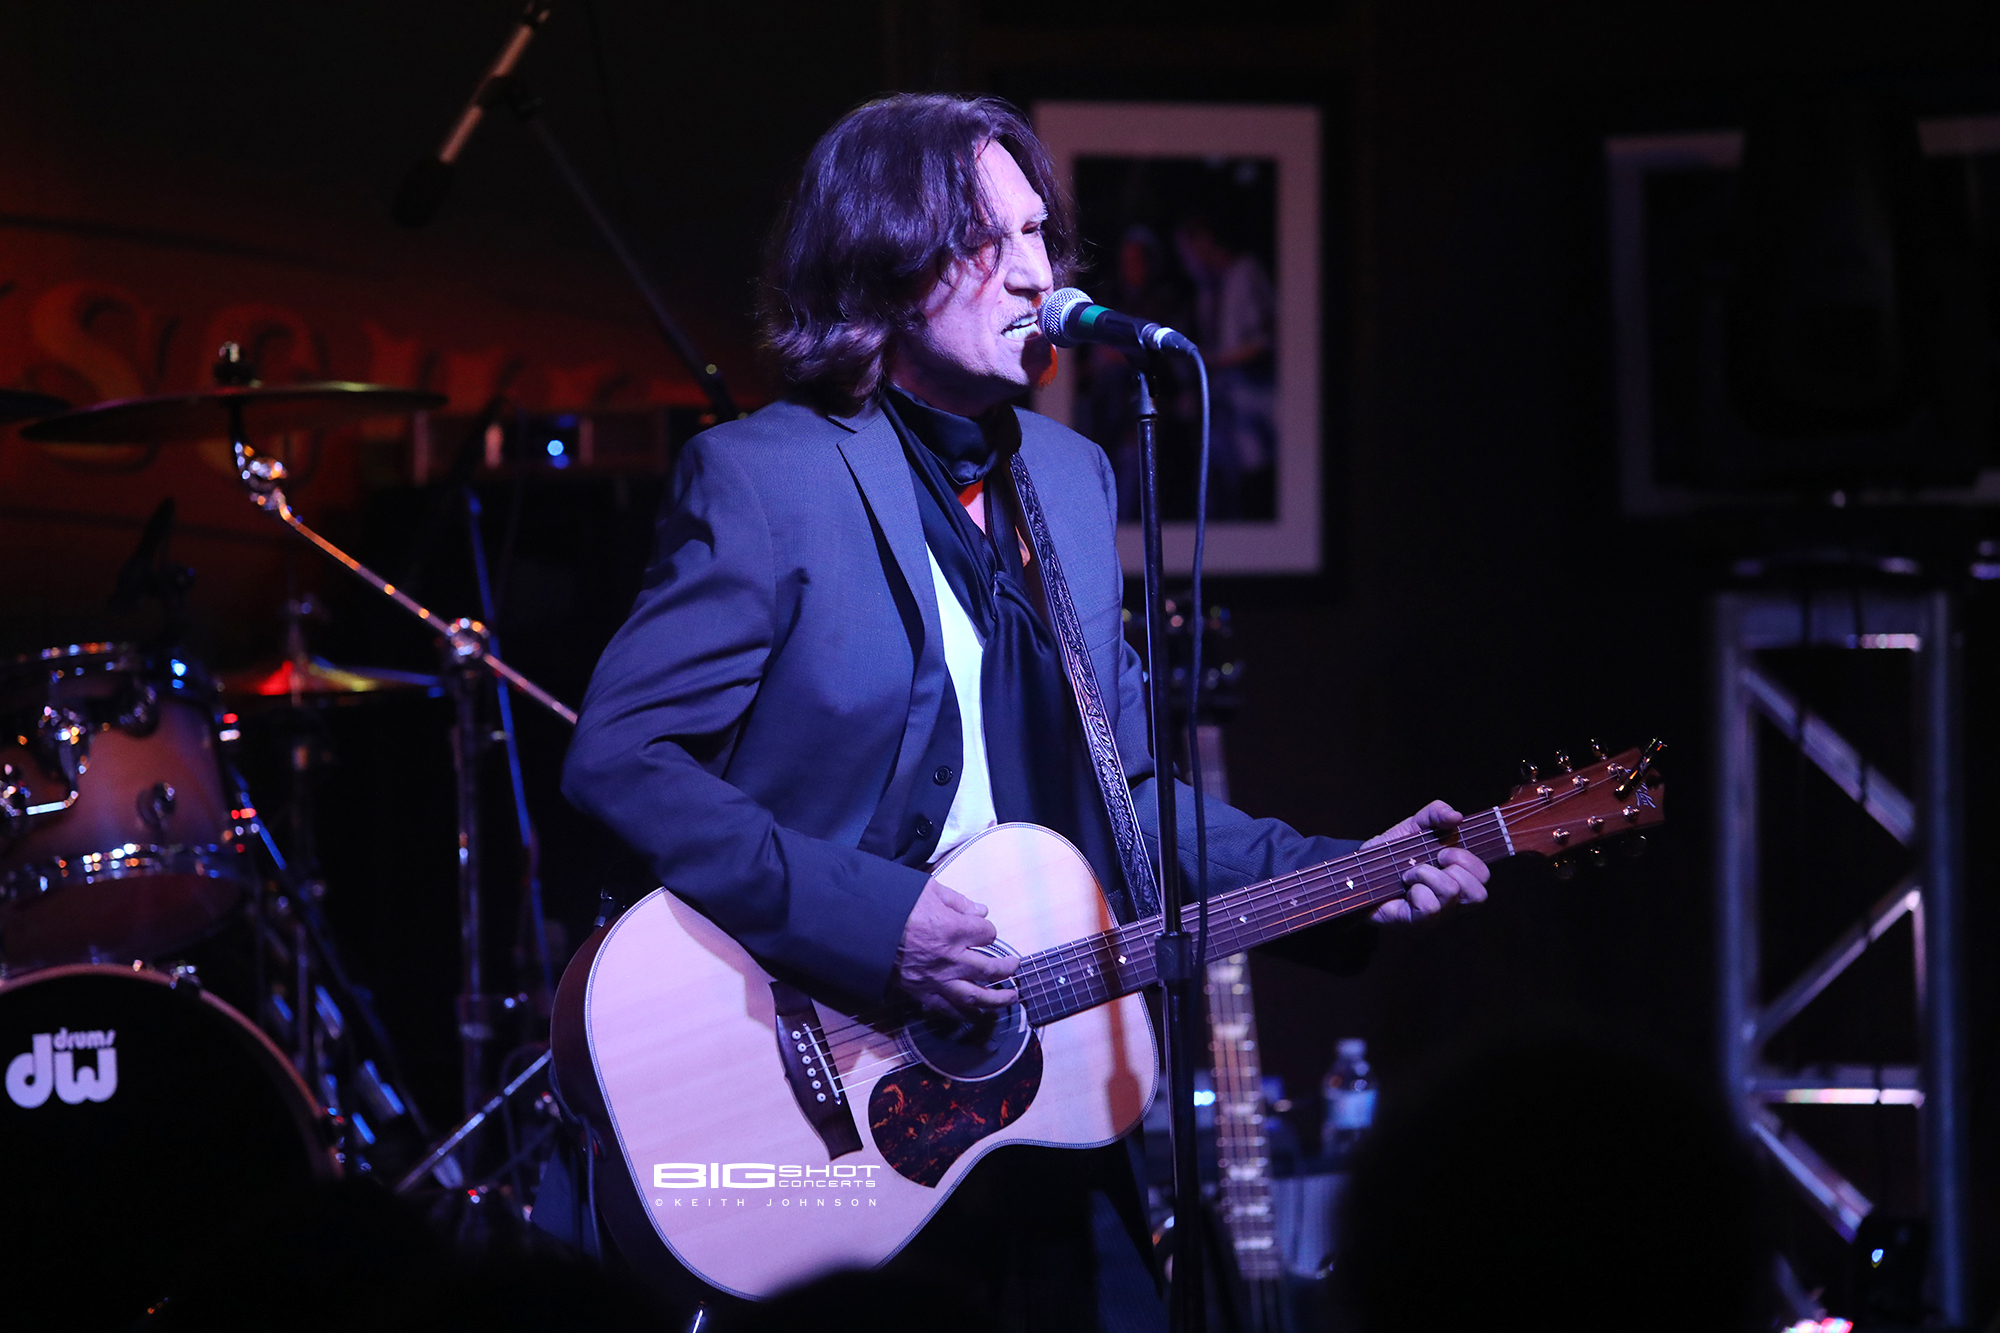 Songwriter John Waite at The Funky Biscuit